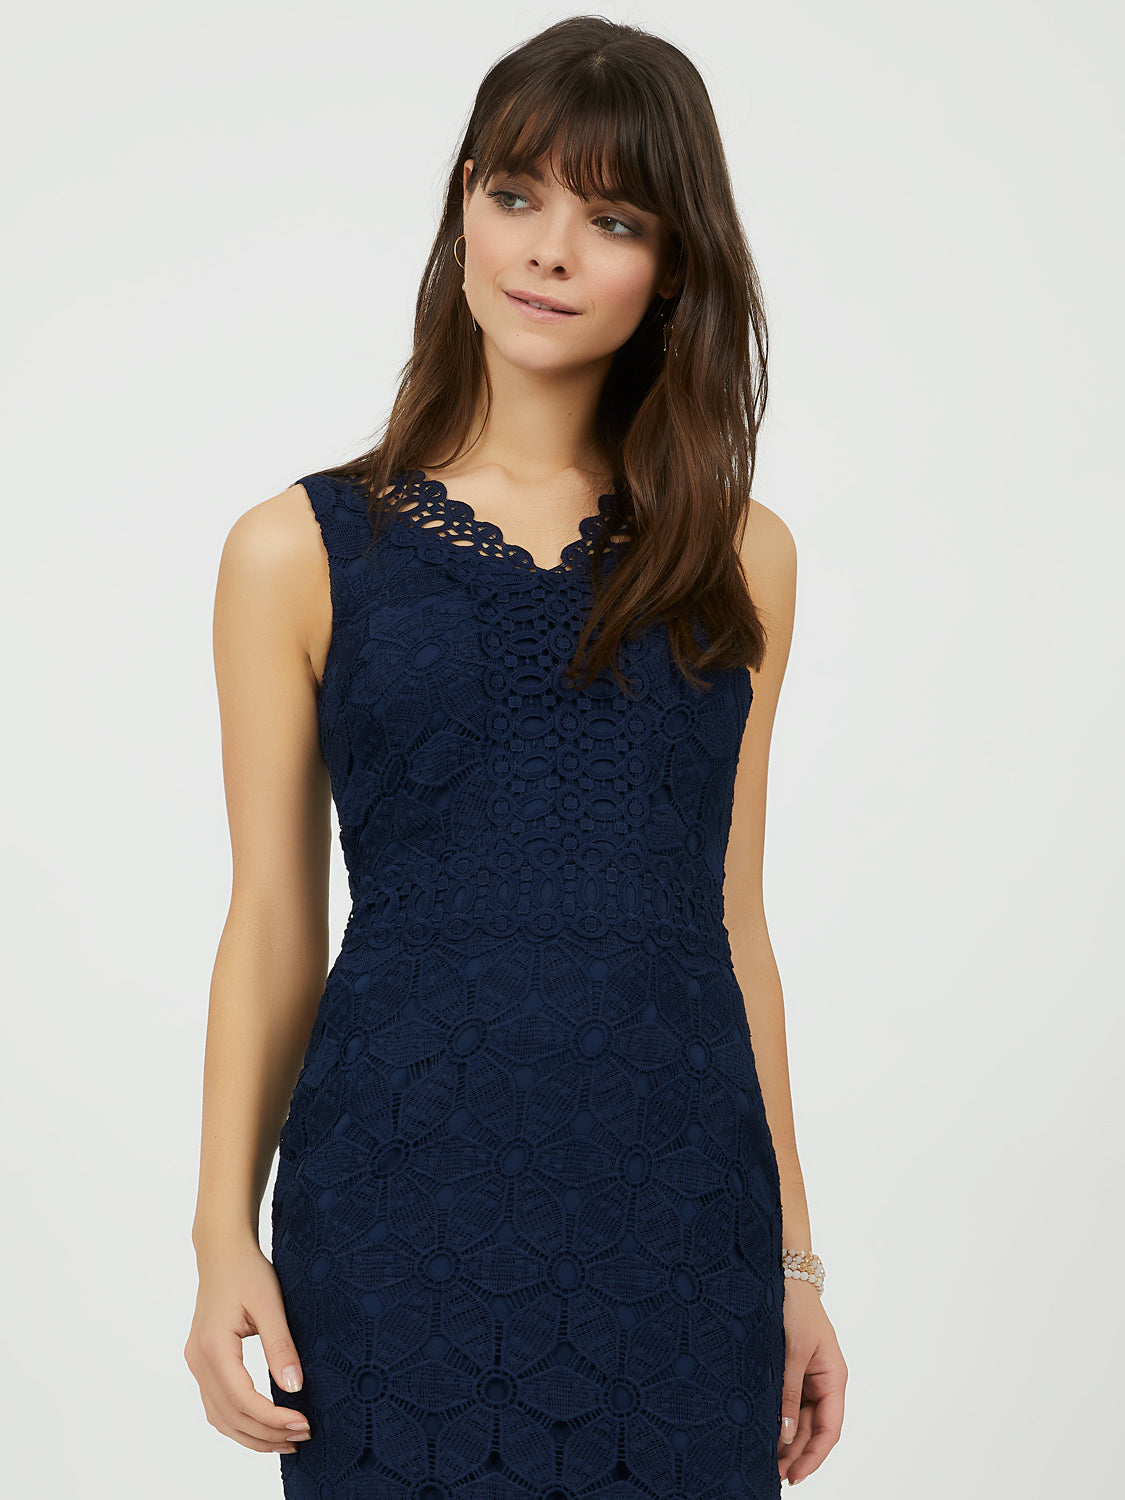 Embroidered Crochet Lace Sheath Dress